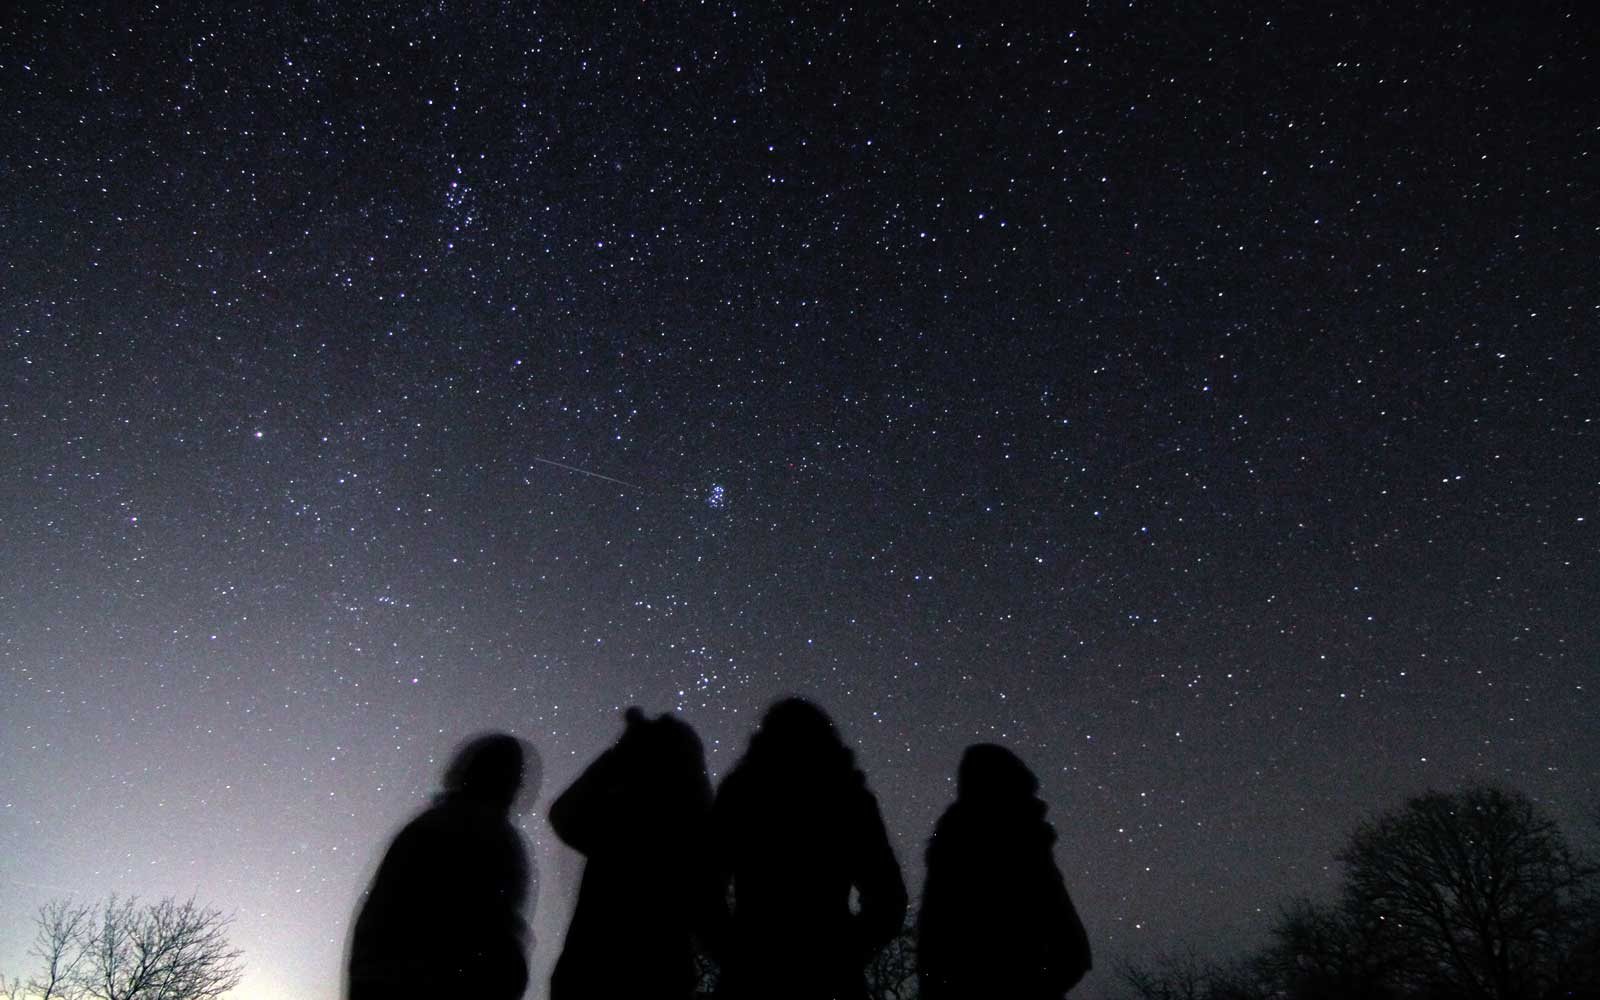 Astronomer observe the Gemenids meteor shower in the observatory of Avren, East of the Bulgarian capital Sofia